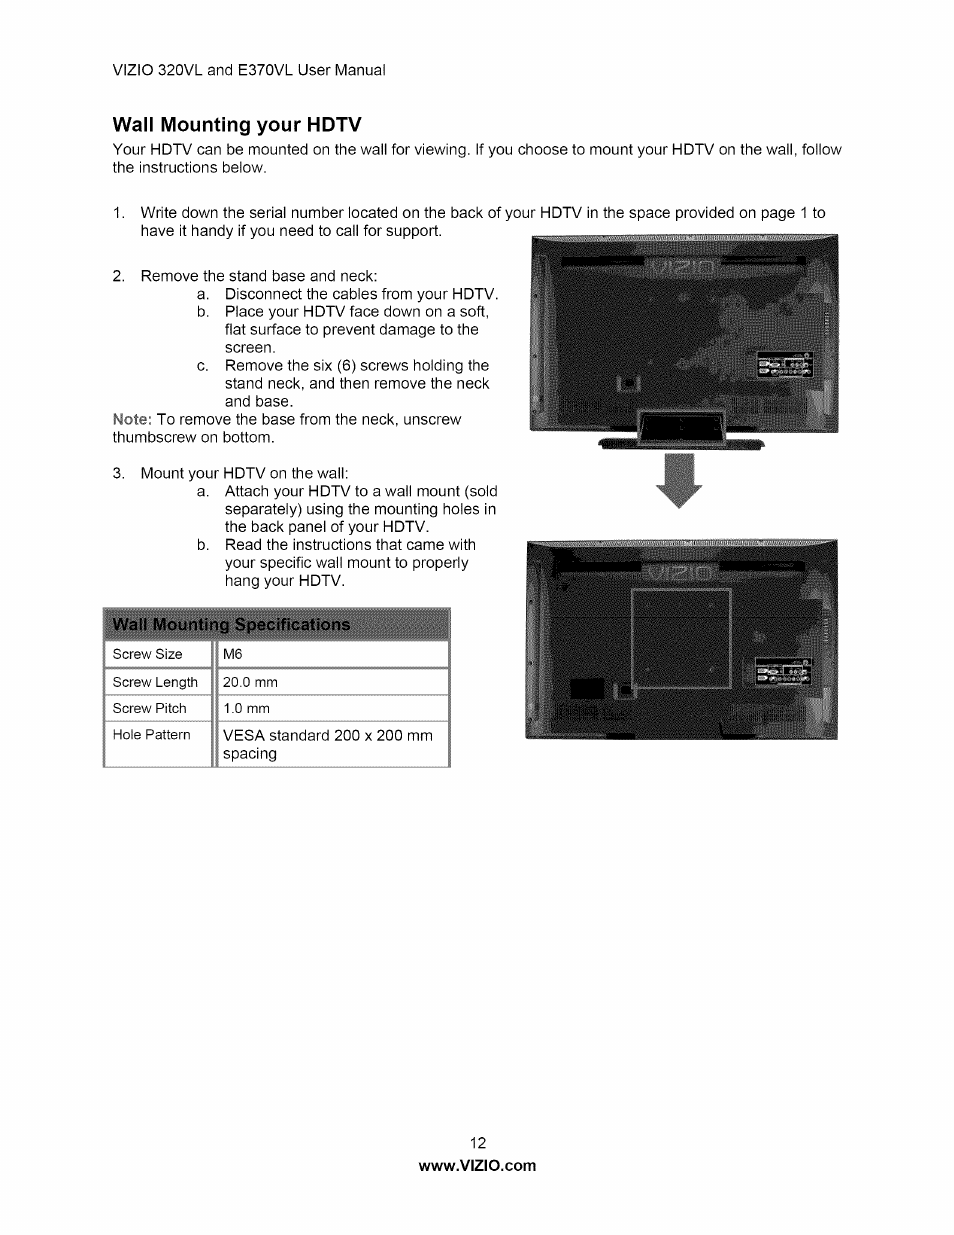 Wall mounting your hdtv | Vizio E320VL User Manual | Page 12 / 54